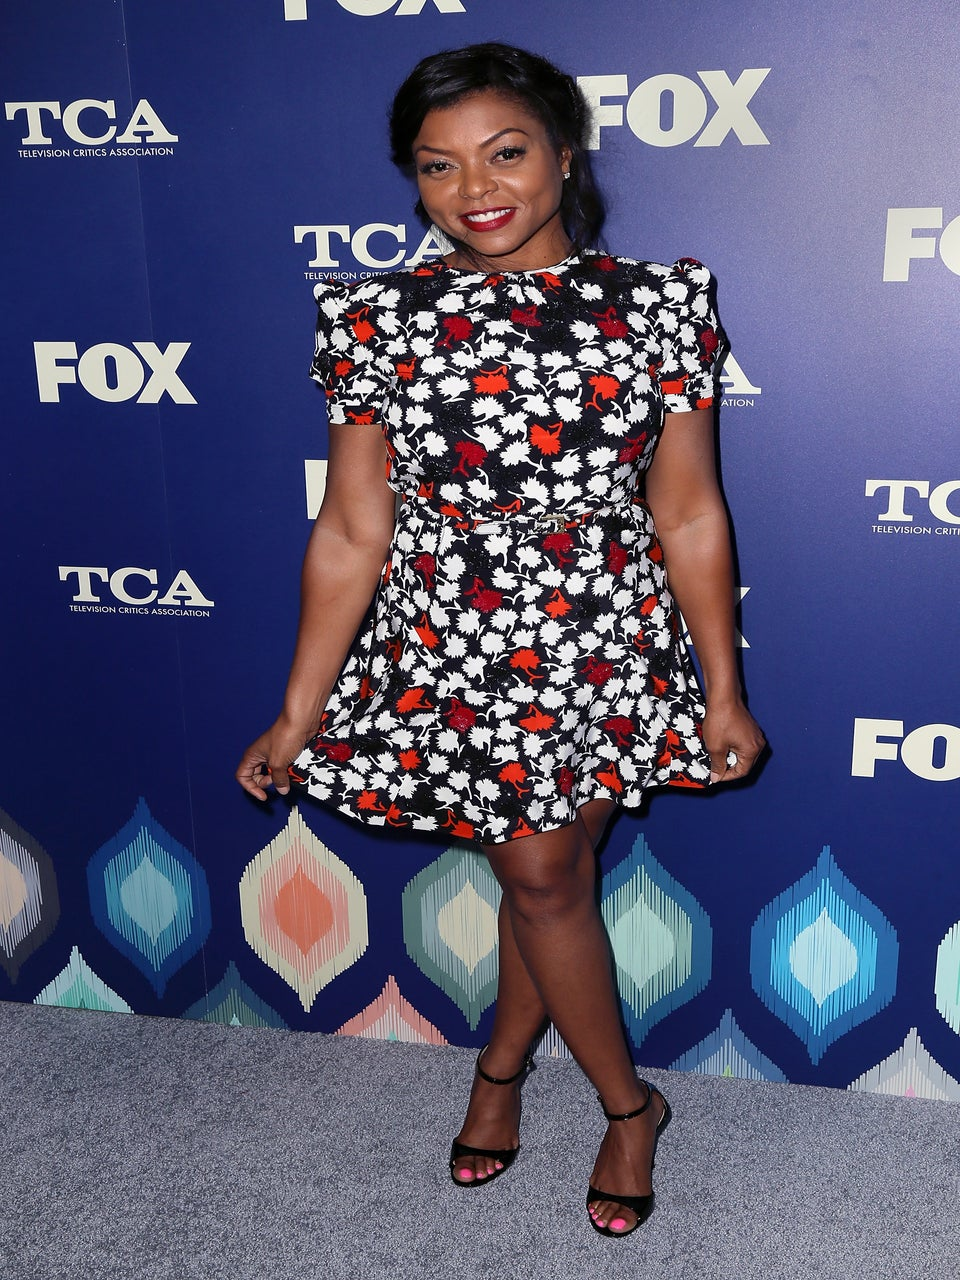 Look of the Day: Taraji P. Henson's Floral Moment Gives Us Major '90s Nostalgia